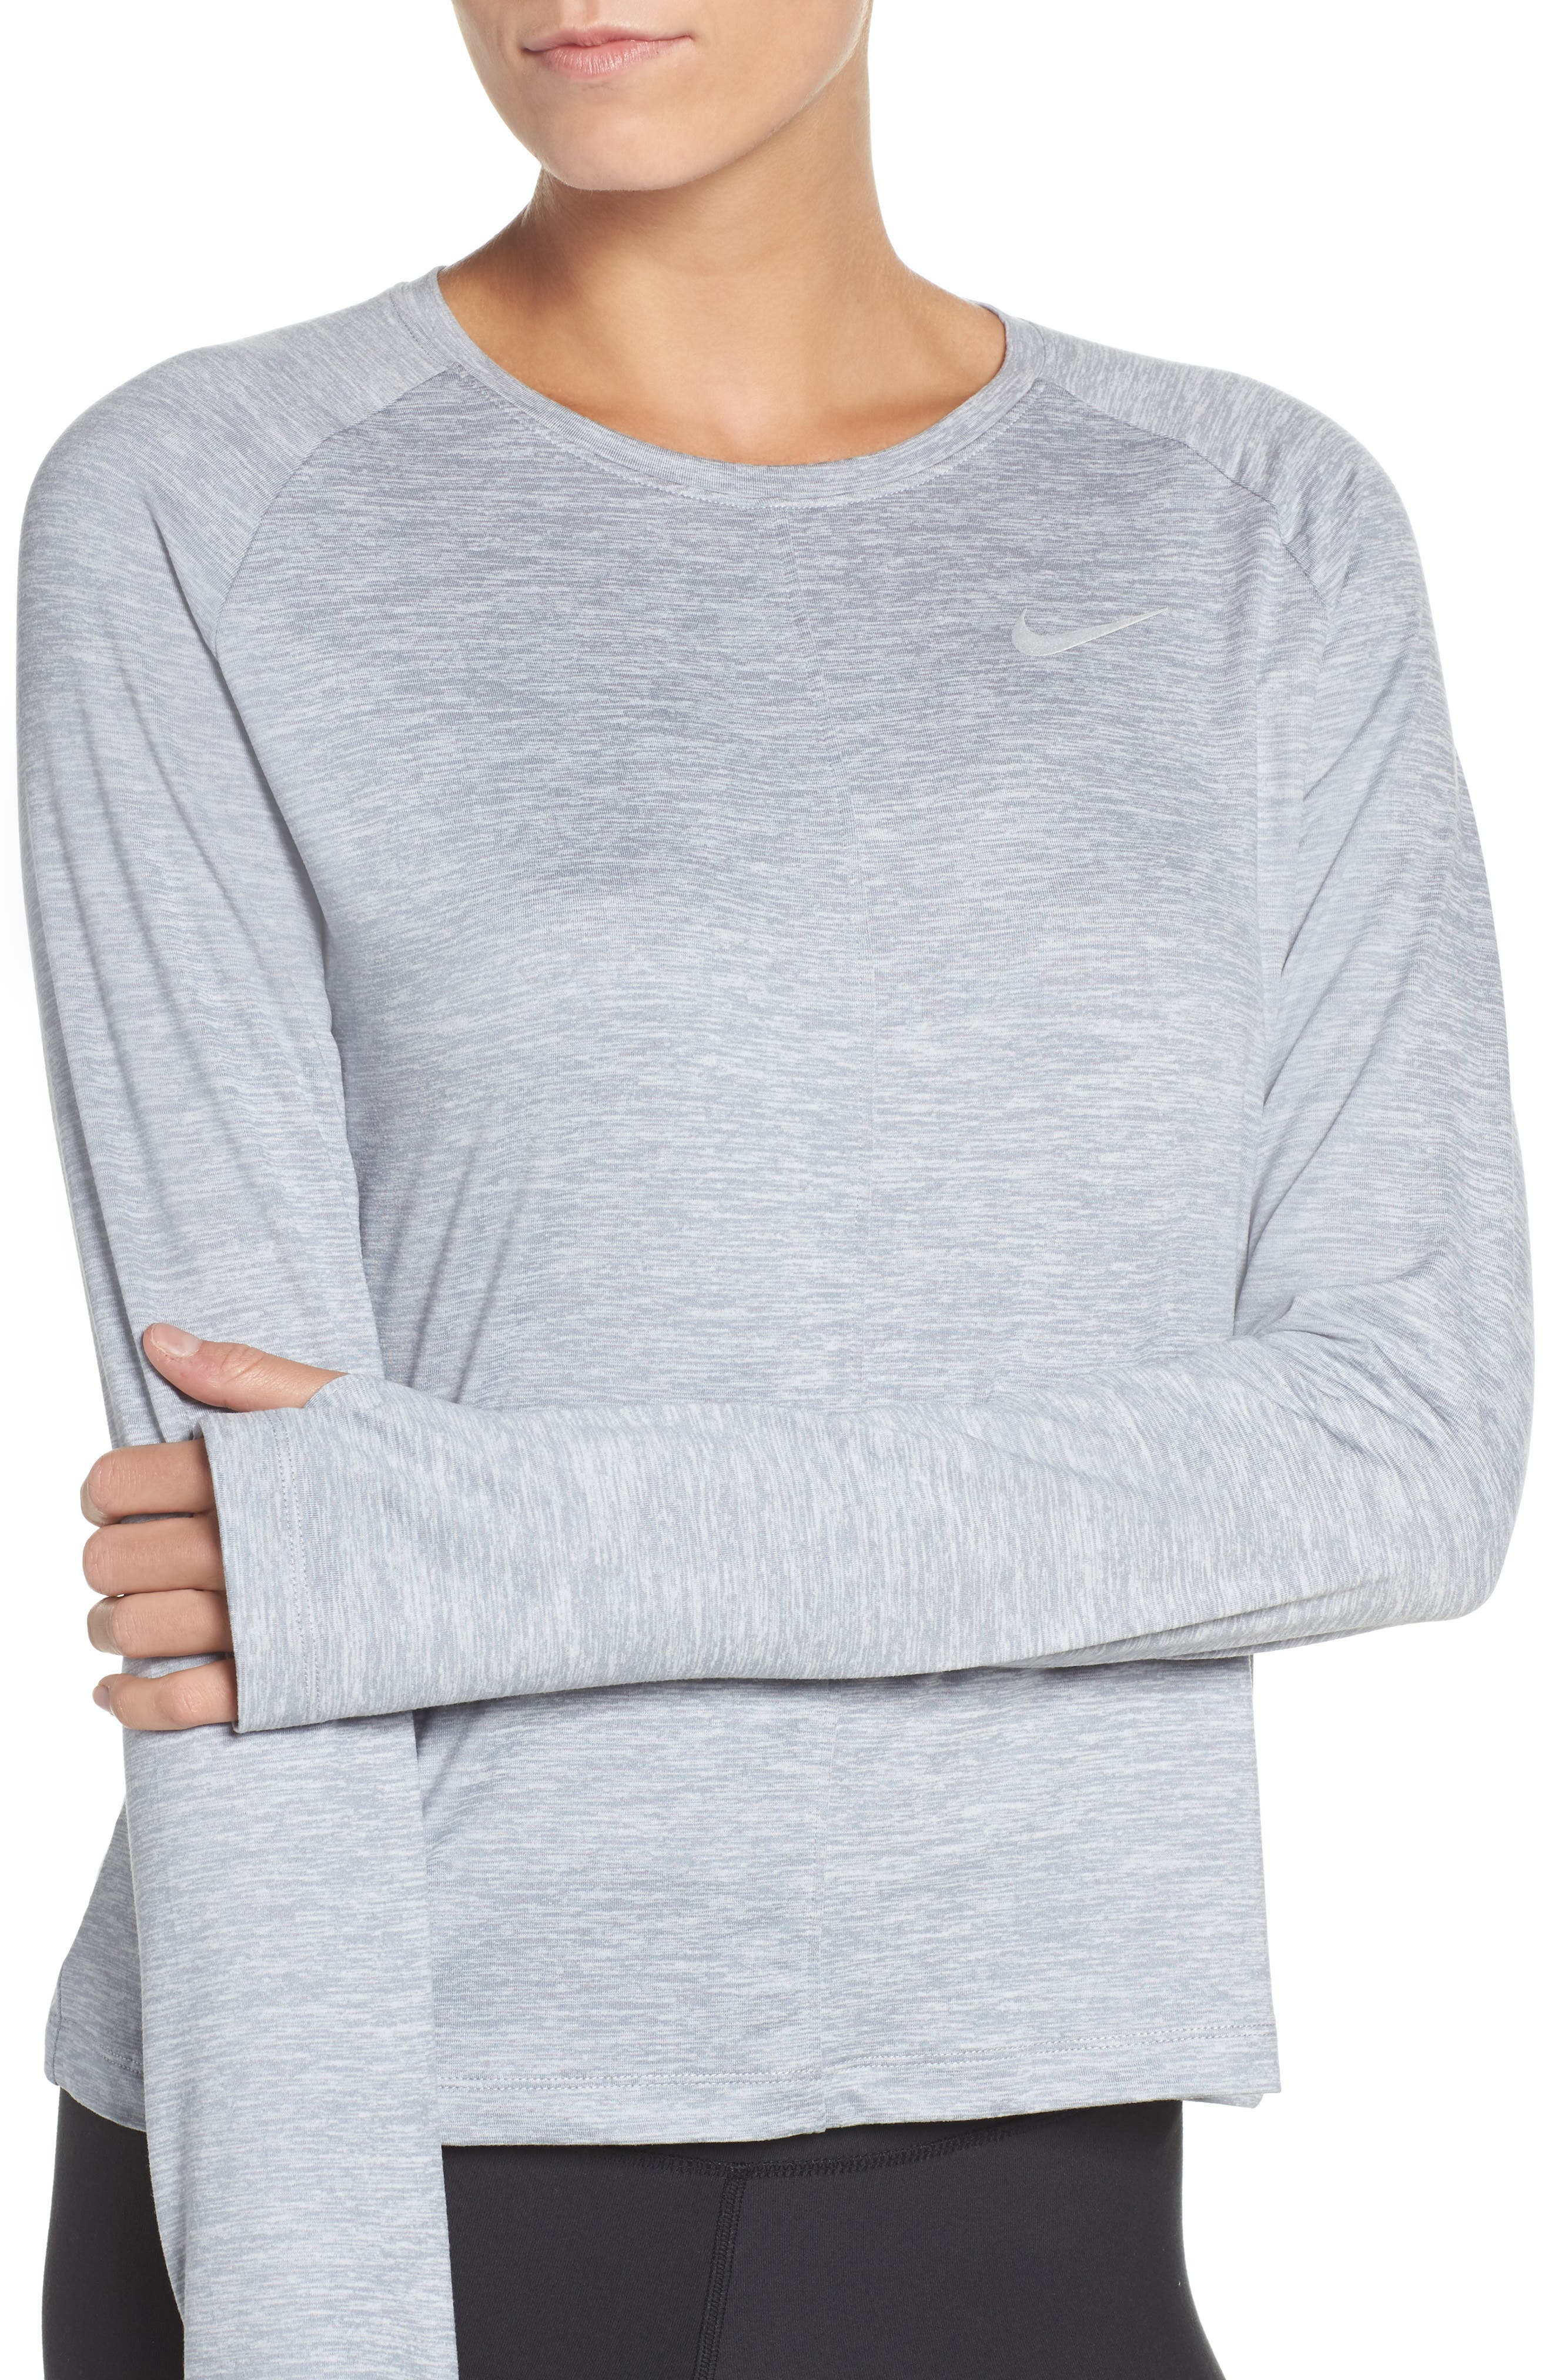 Dry Element Crop Top,                             Alternate thumbnail 4, color,                             Wolf Grey/ Heather